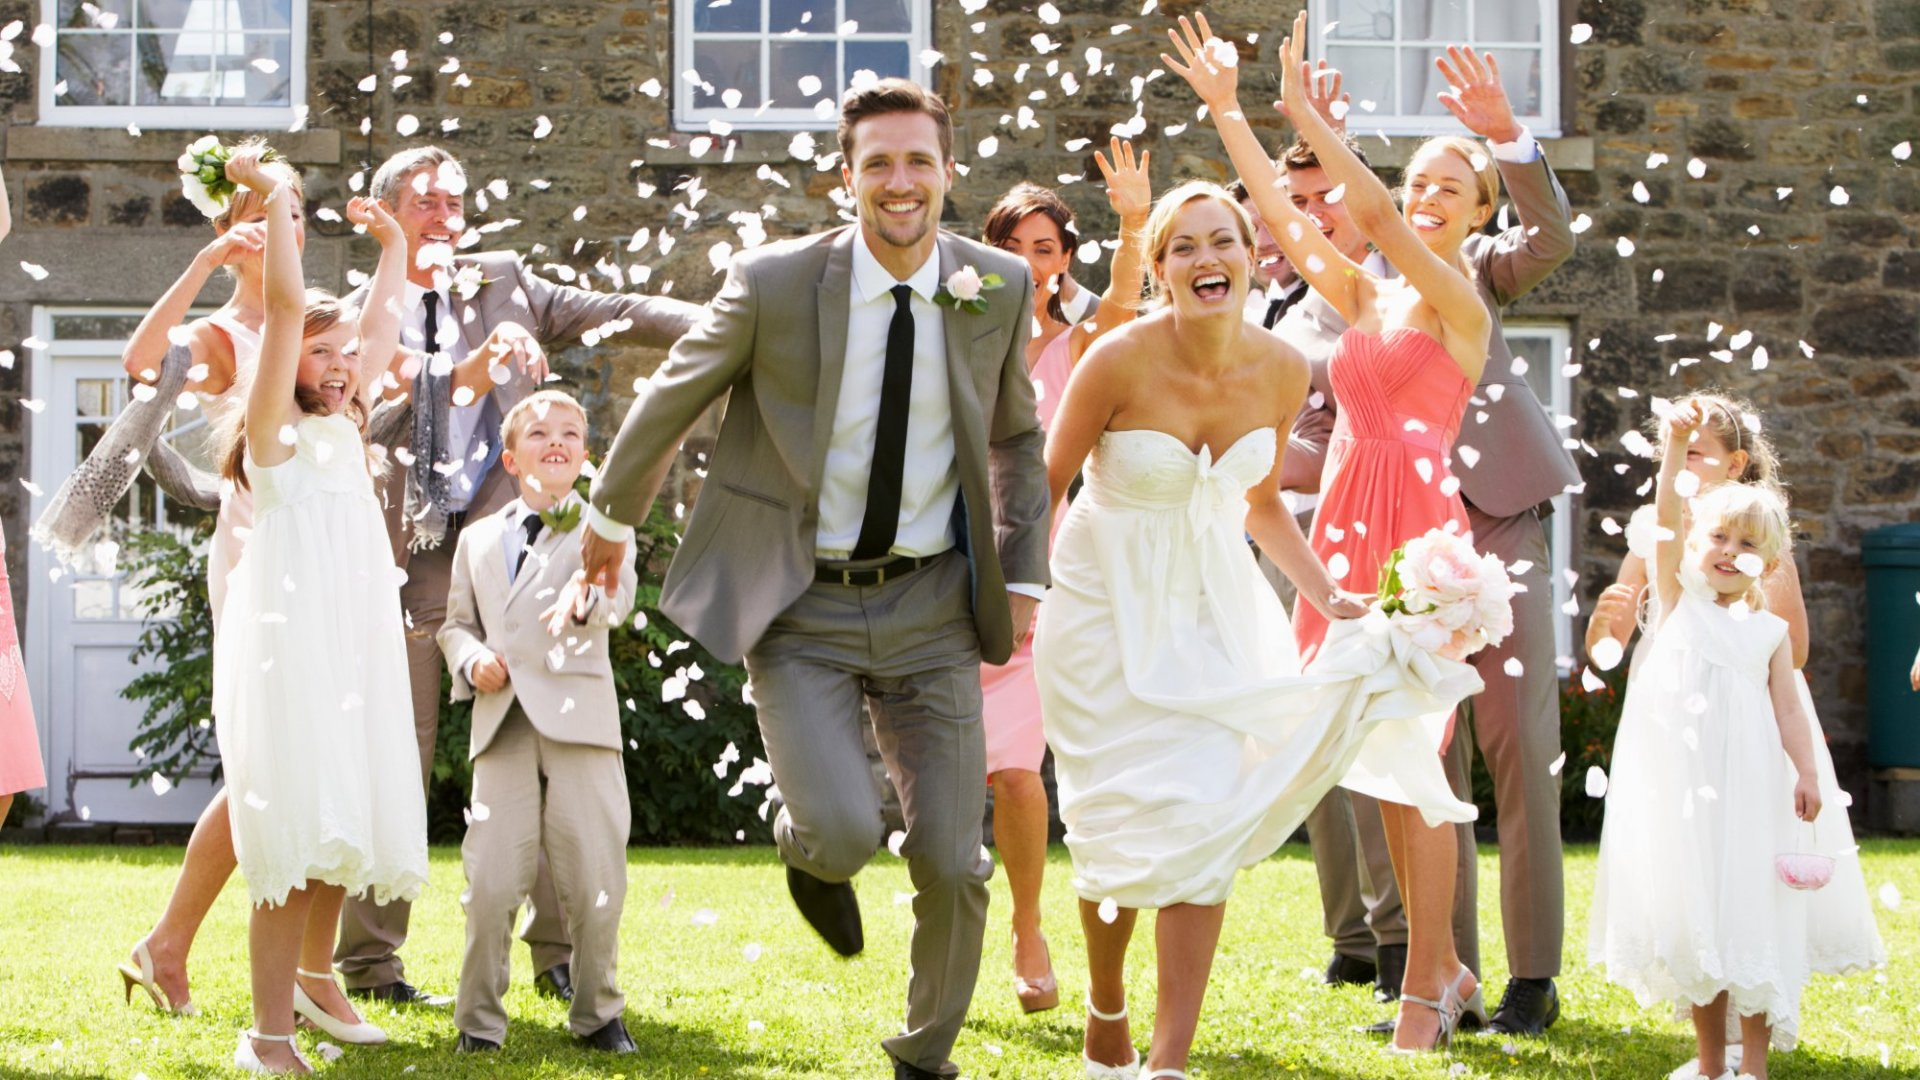 Getting Married This Summer? Here are 5 Things to Remember Along With the Rings